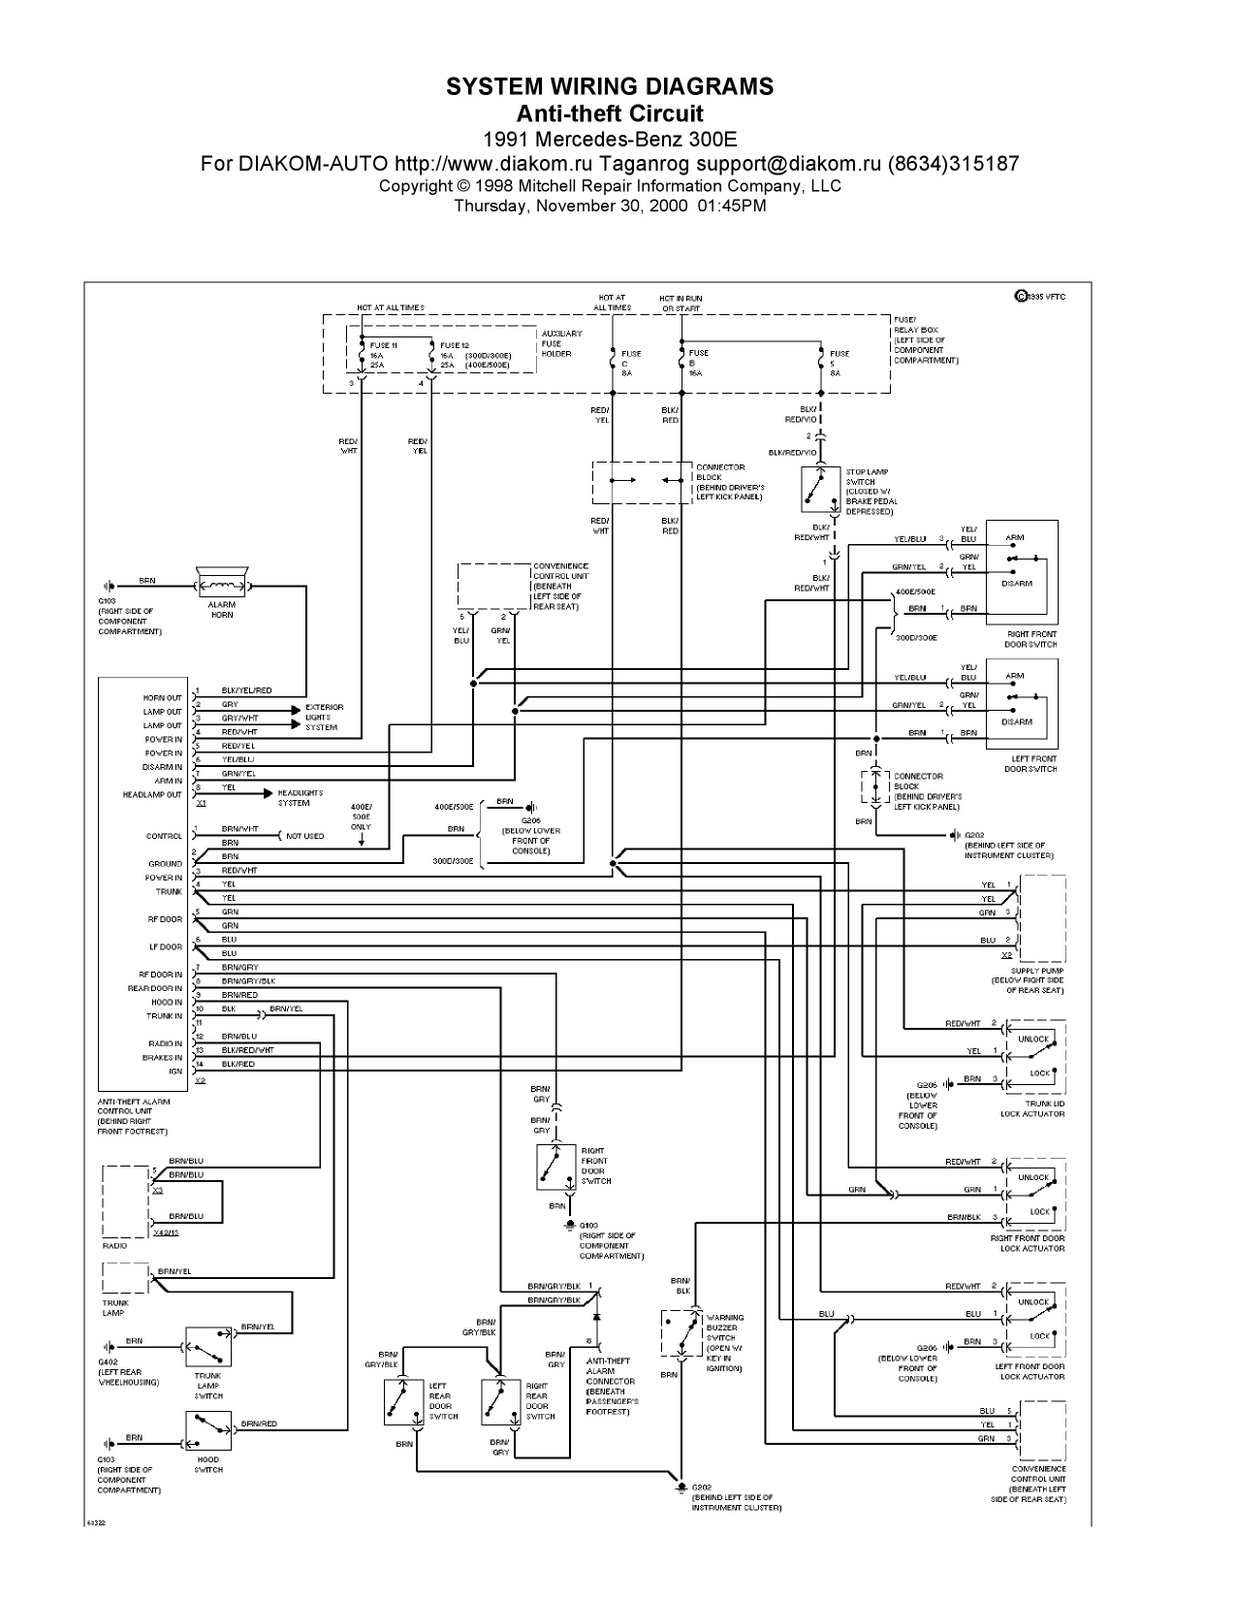 1992 mercedes 300se fuse diagram wiring diagram online rh 15 7 lightandzaun de